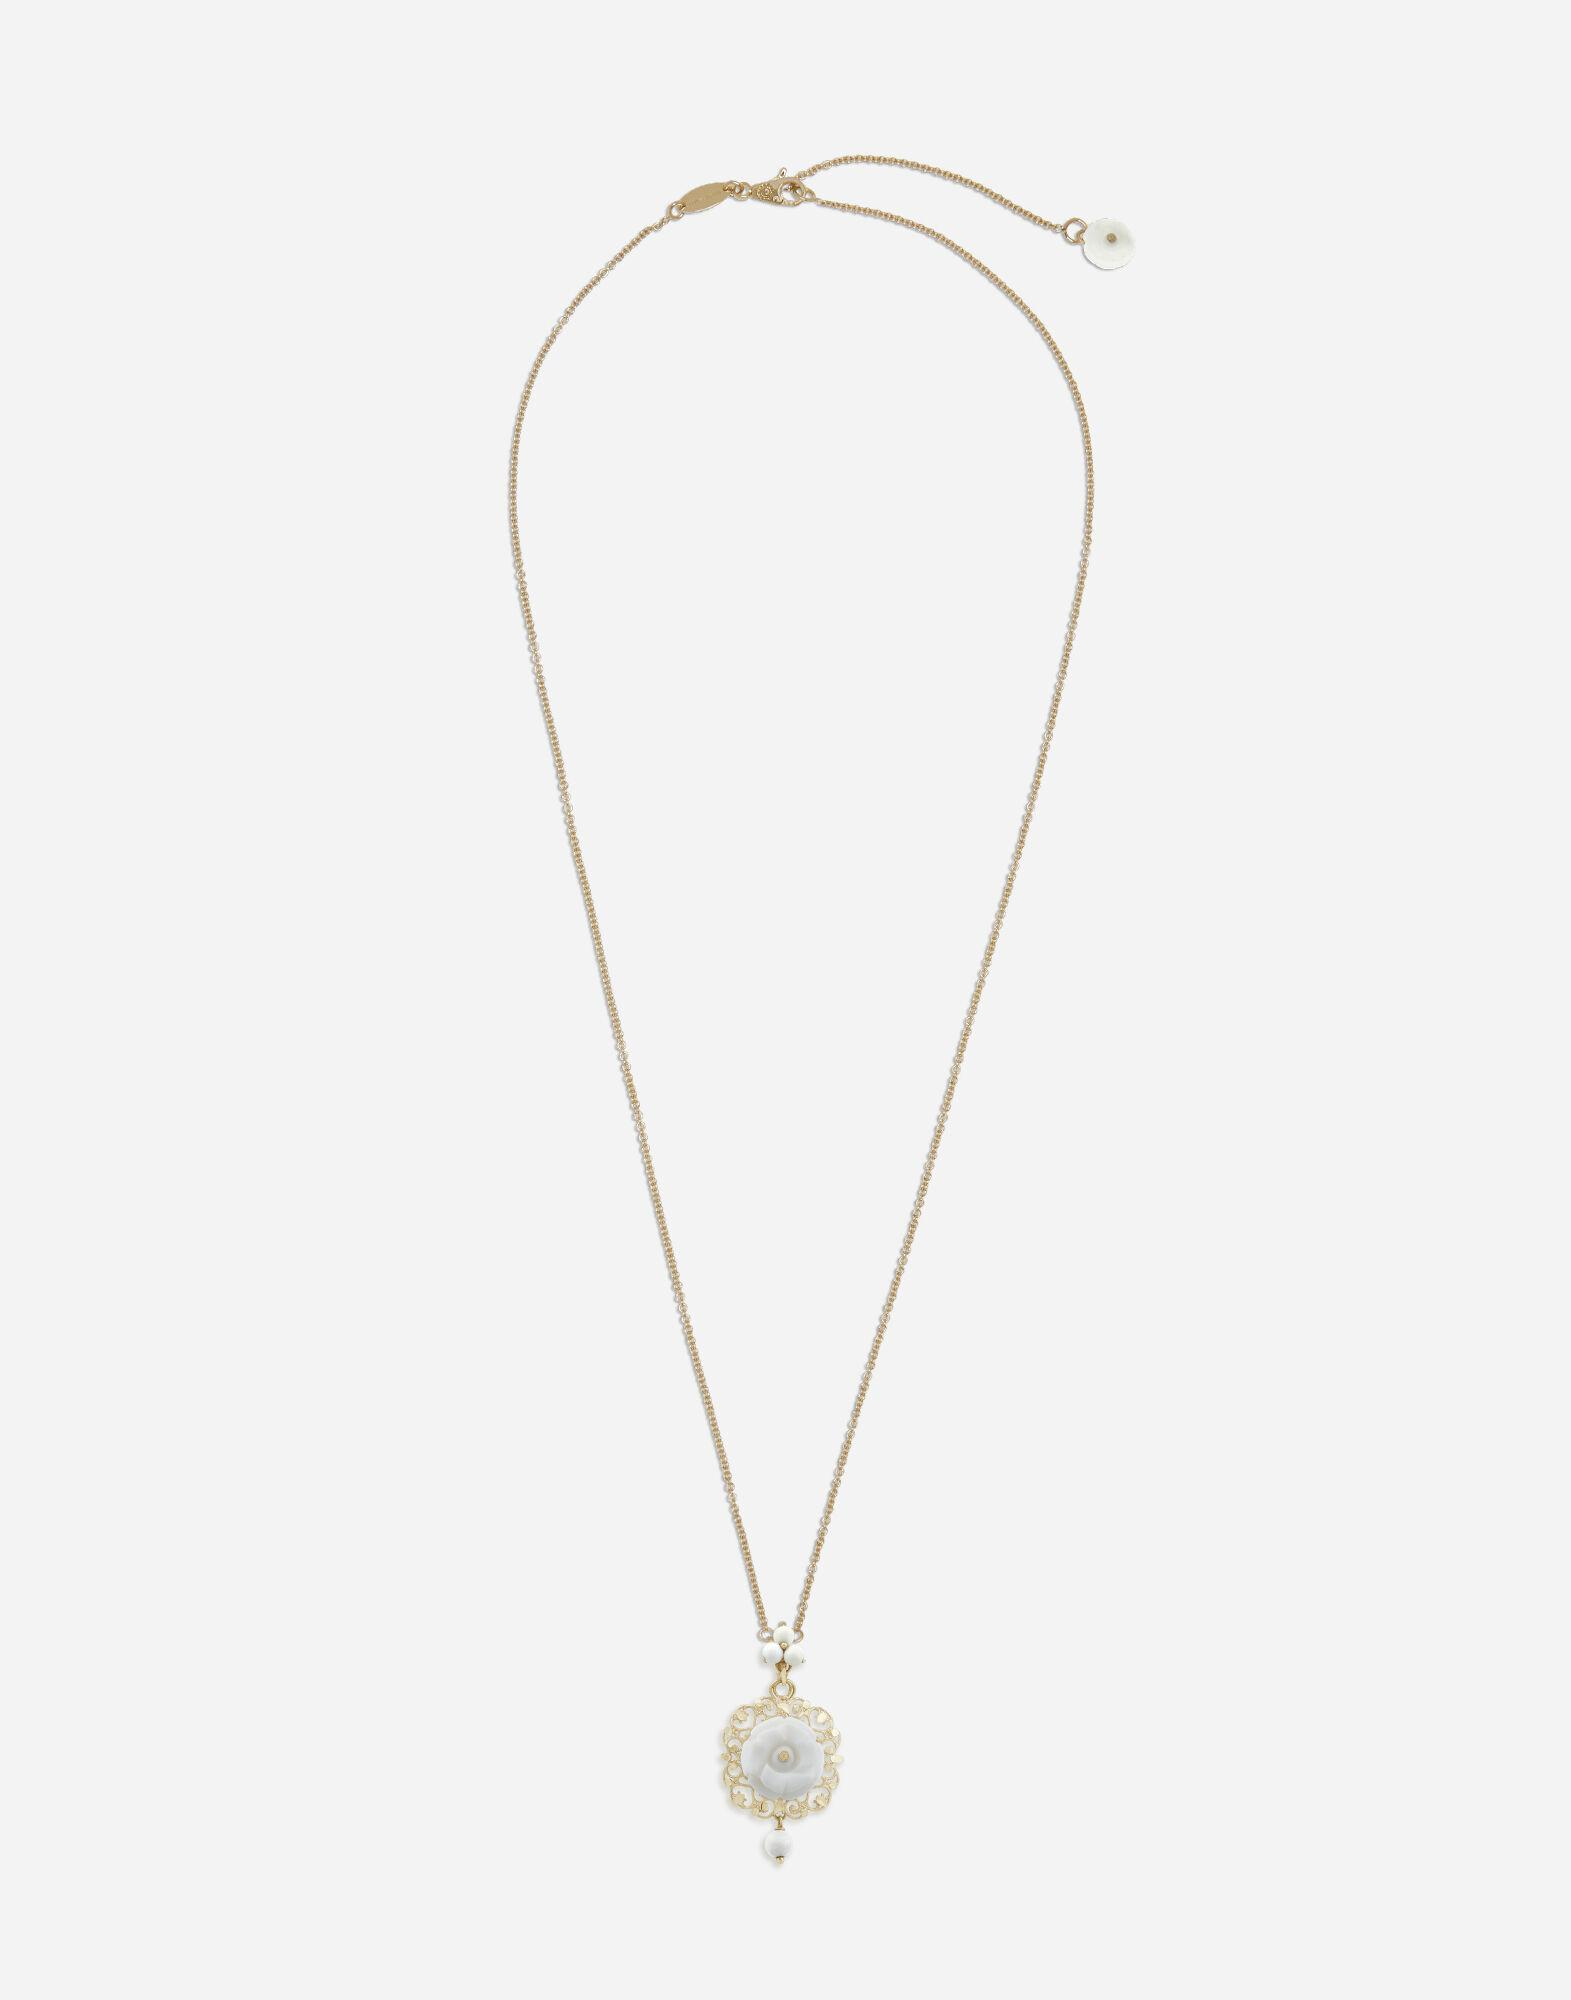 Mamma pendant in yellow gold and white opals